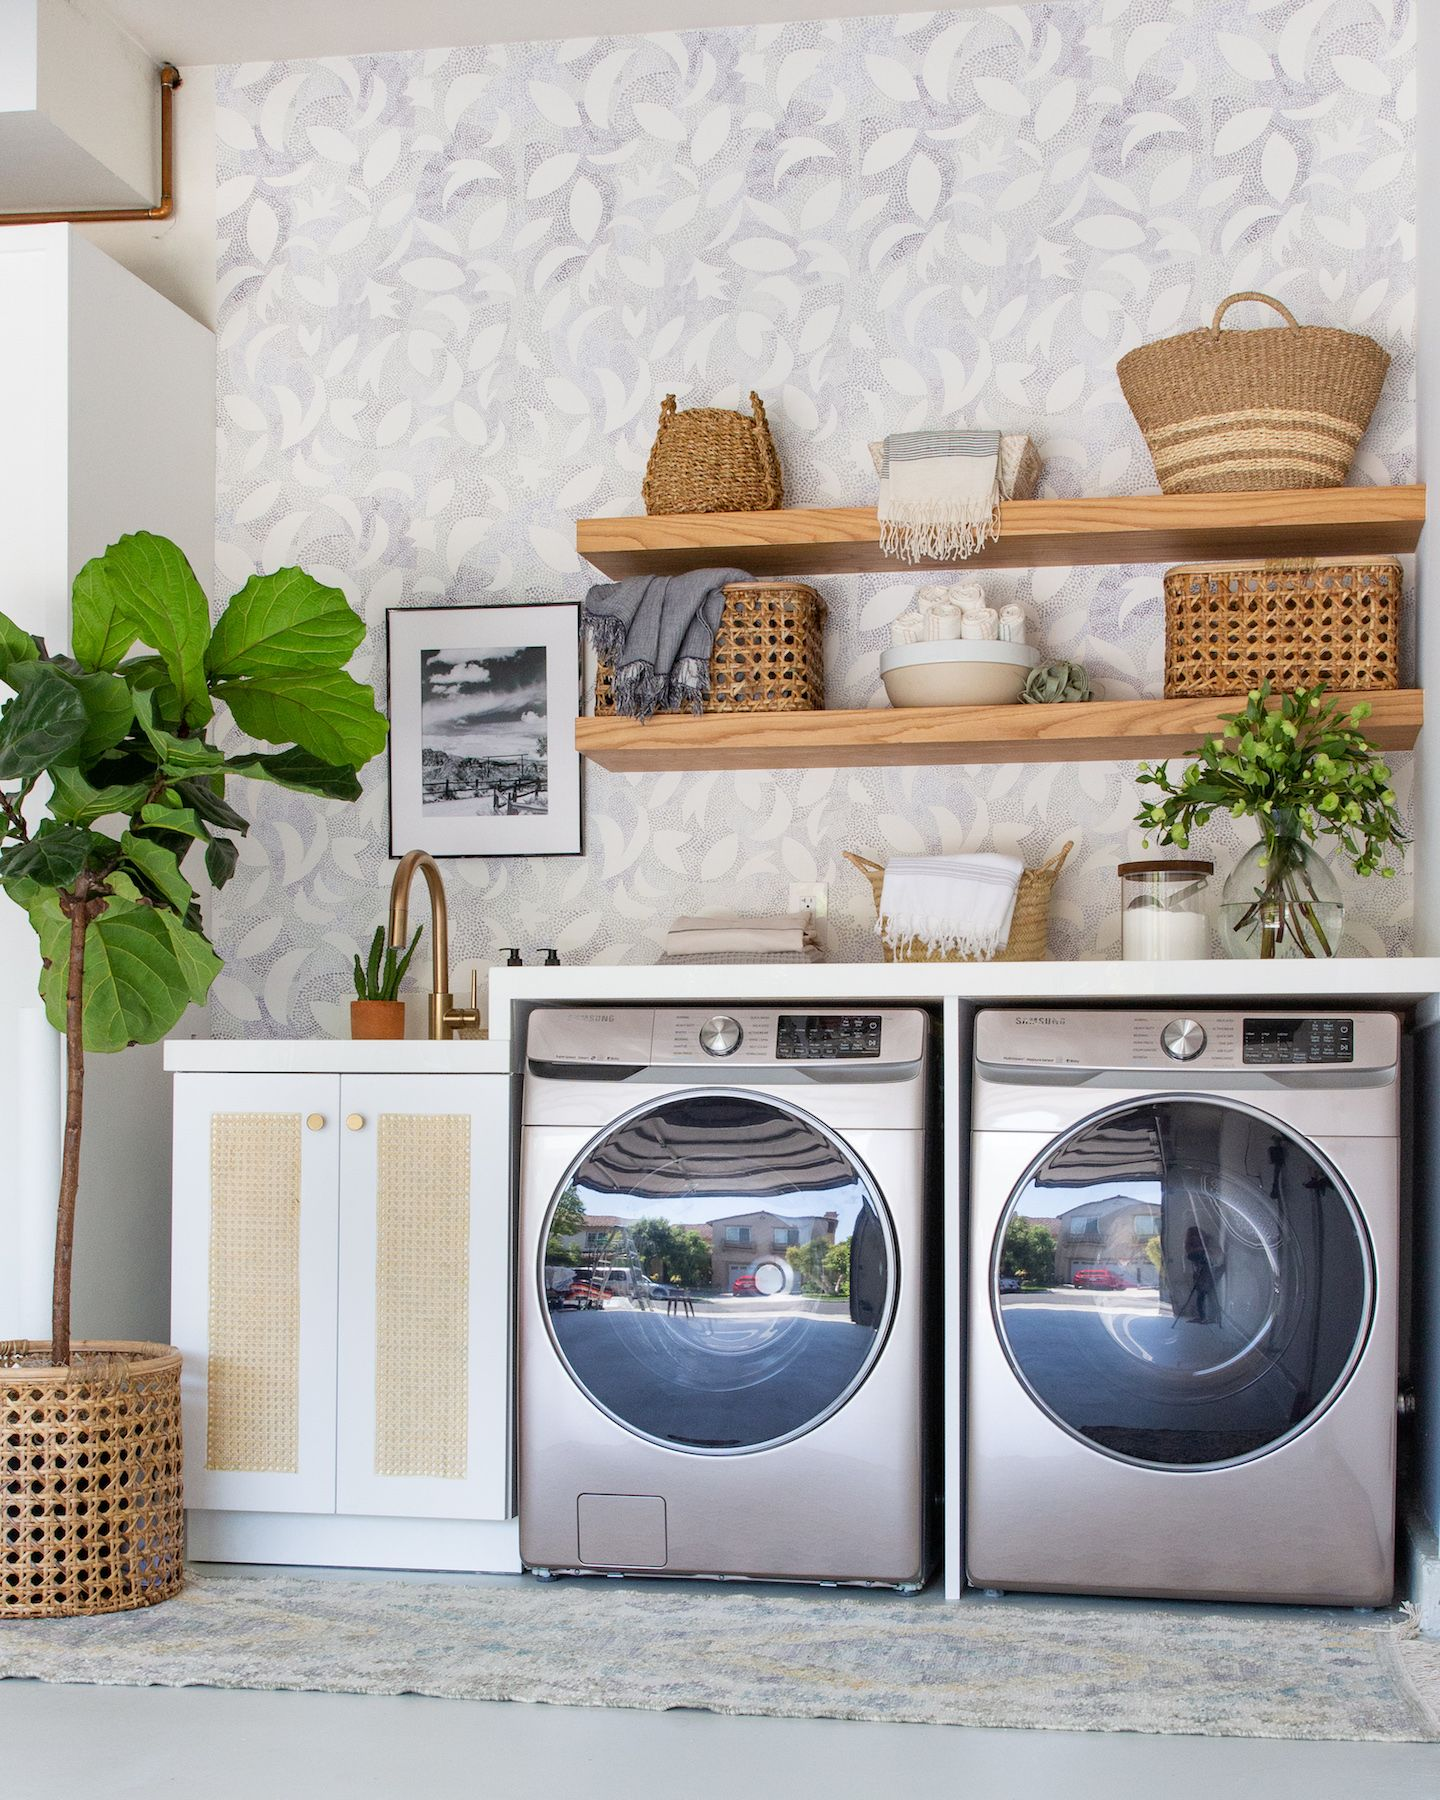 5 Design Ideas To Steal From A Gorgeous Garage Turned Laundry Room